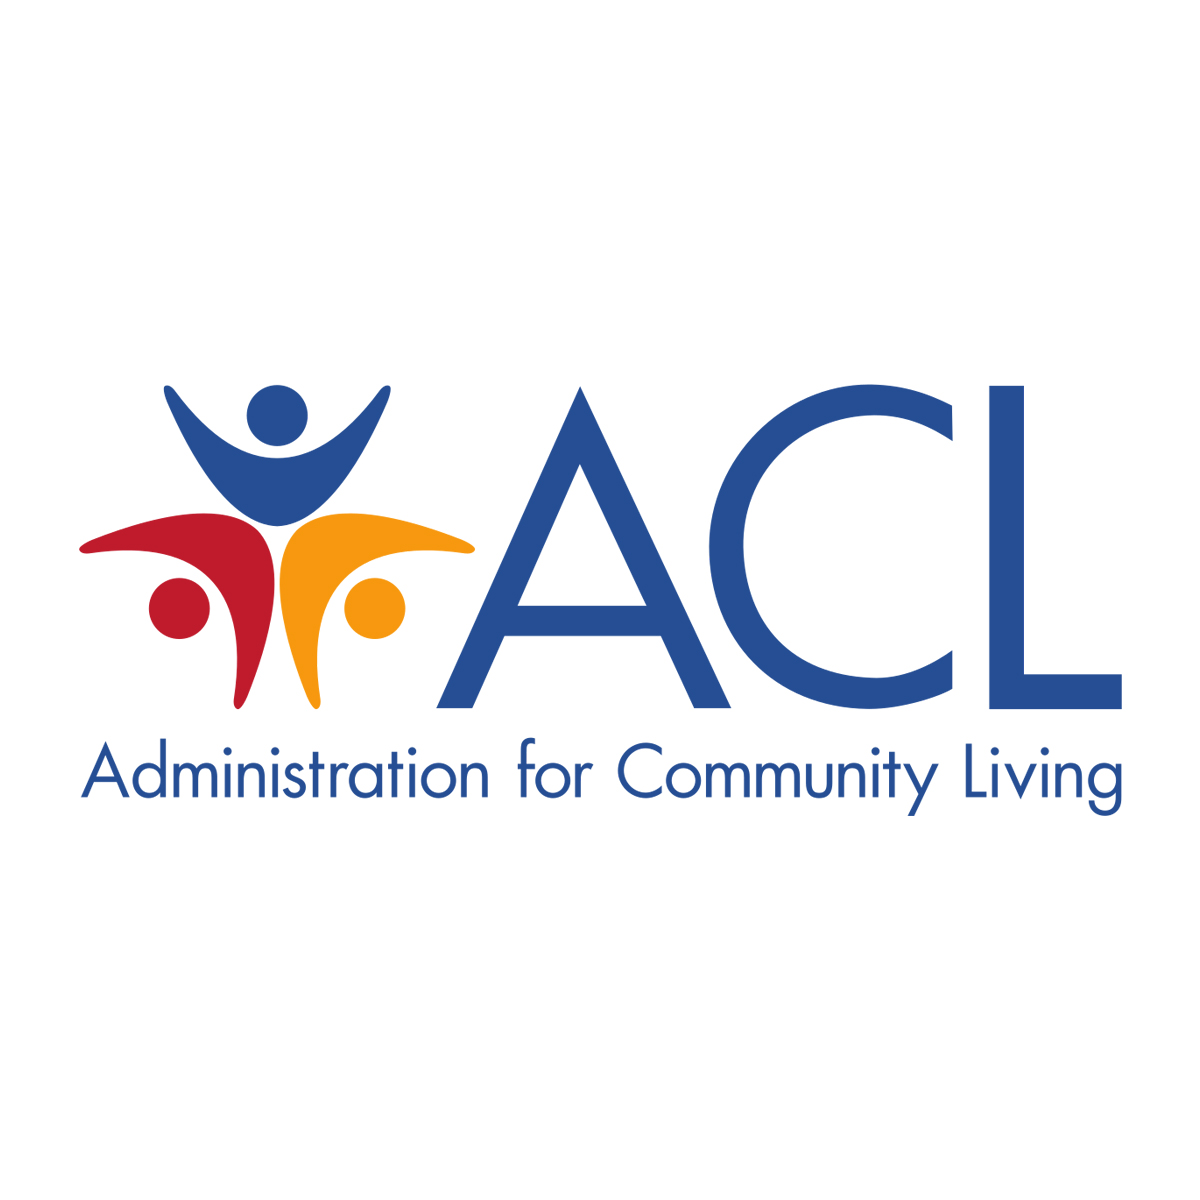 The Administration for Community Living logo